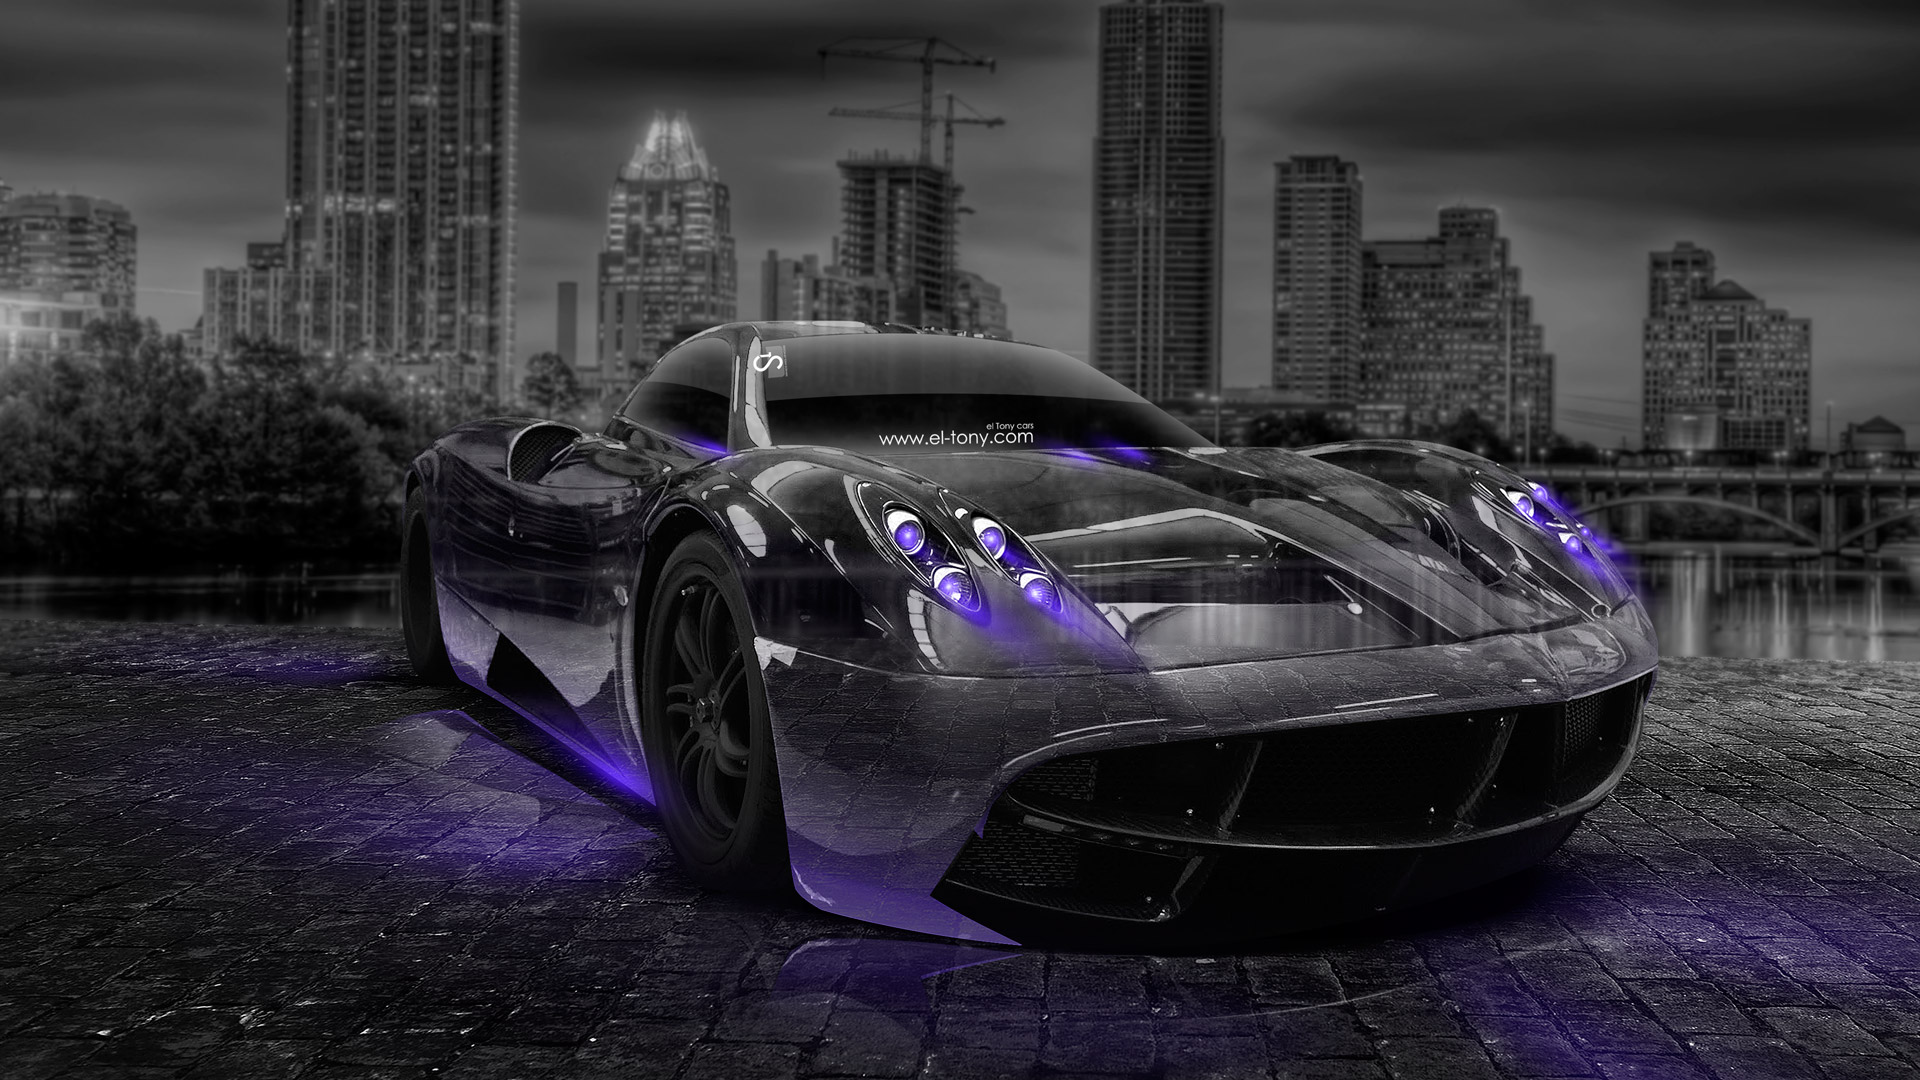 Charming Beau Pagani Huayra Crystal City Car 2014 Violet Neon